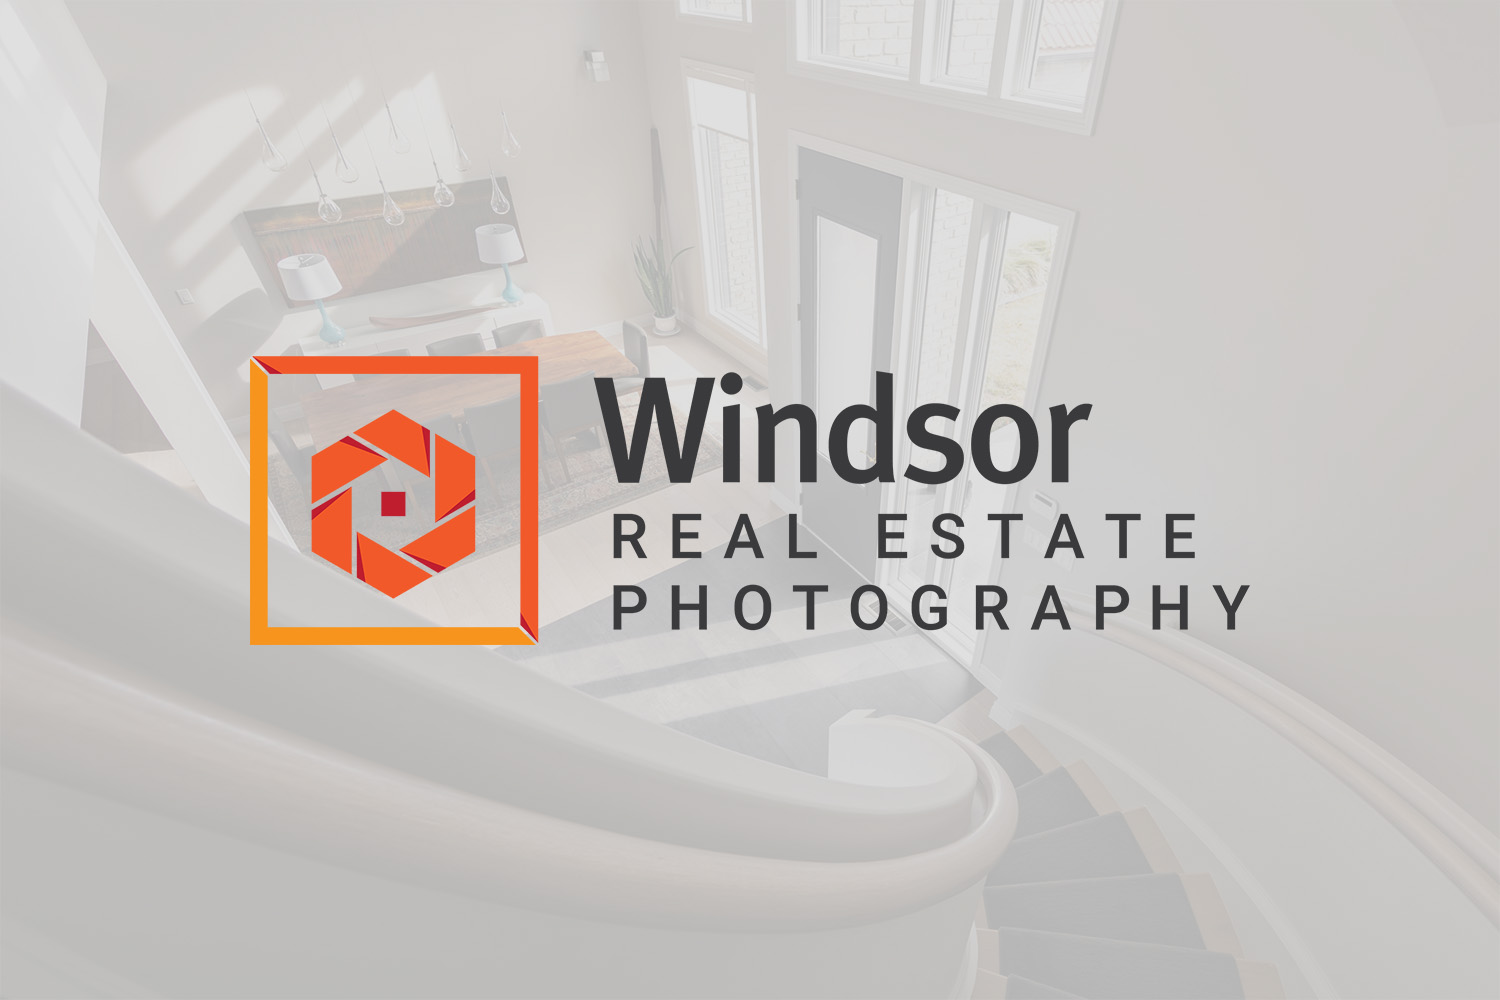 Windsor Real Estate Photography Featured Image